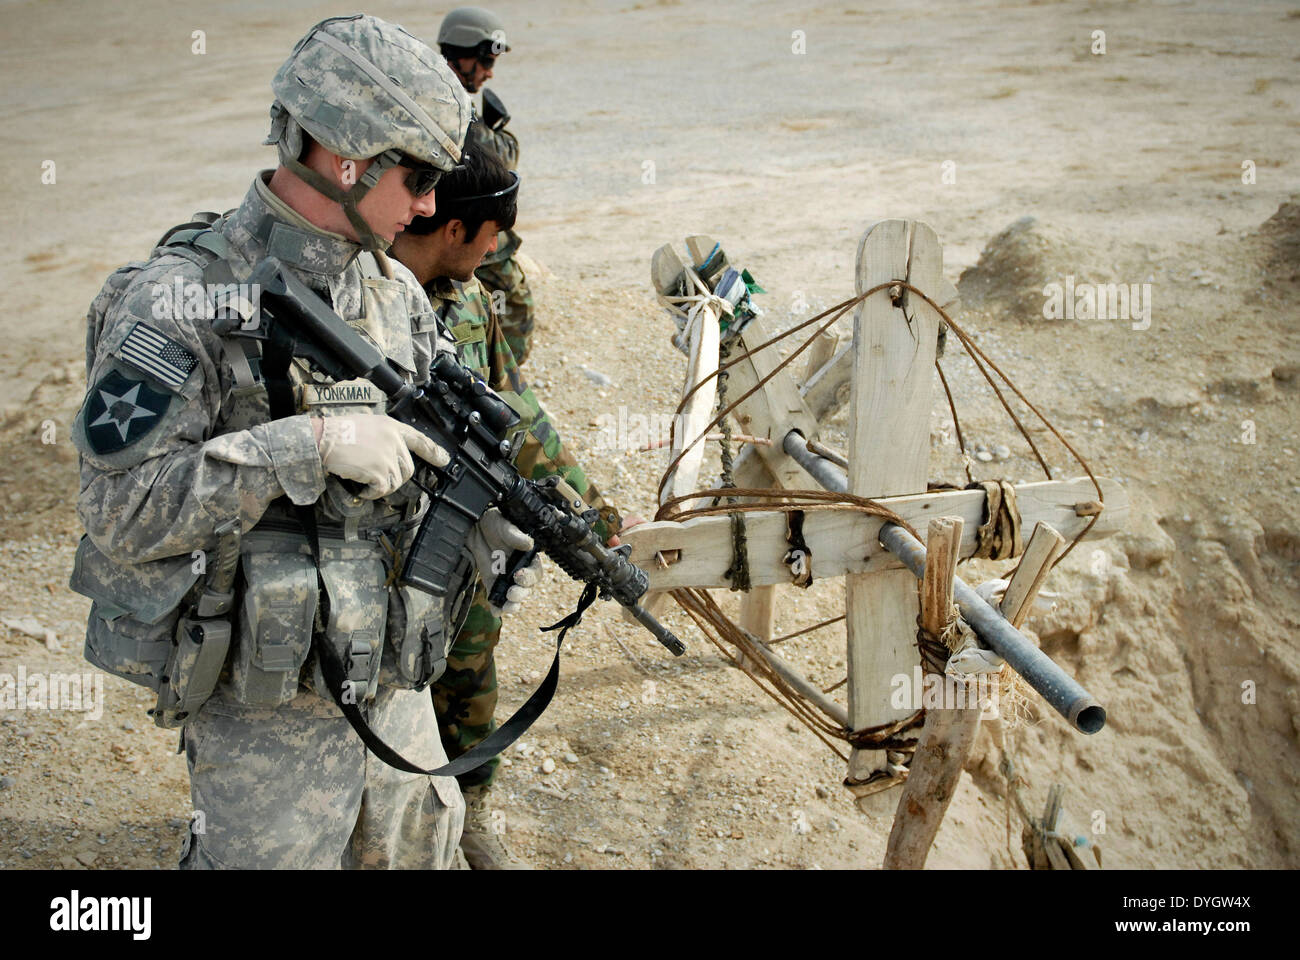 A US soldier investigates a primitive digging device just west of Forward Operating Base Ramrod December 24, 2009 Stock Photo